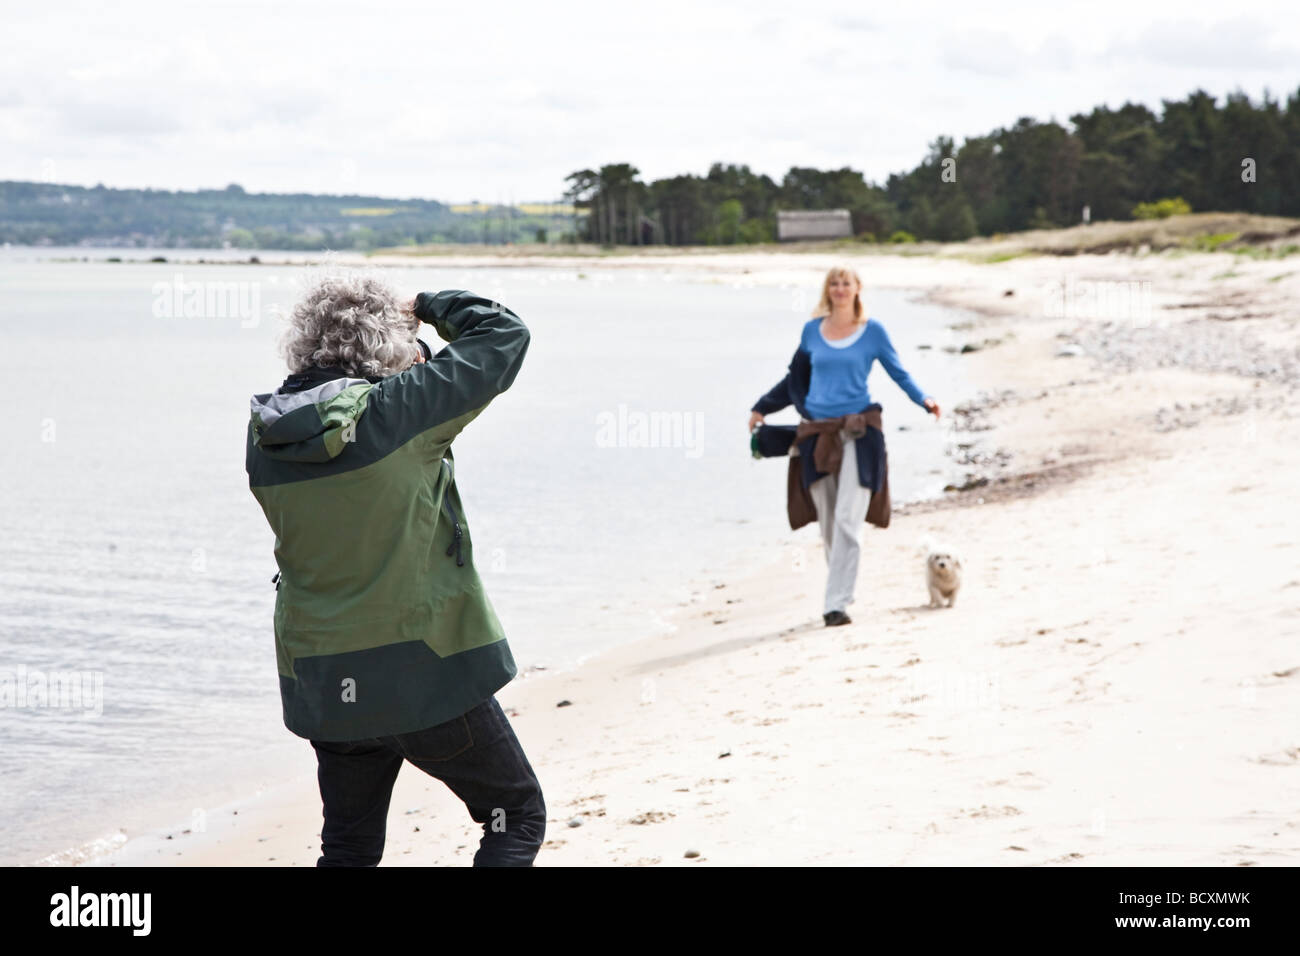 Model being photographed on the beach Focus is on photographer - Stock Image